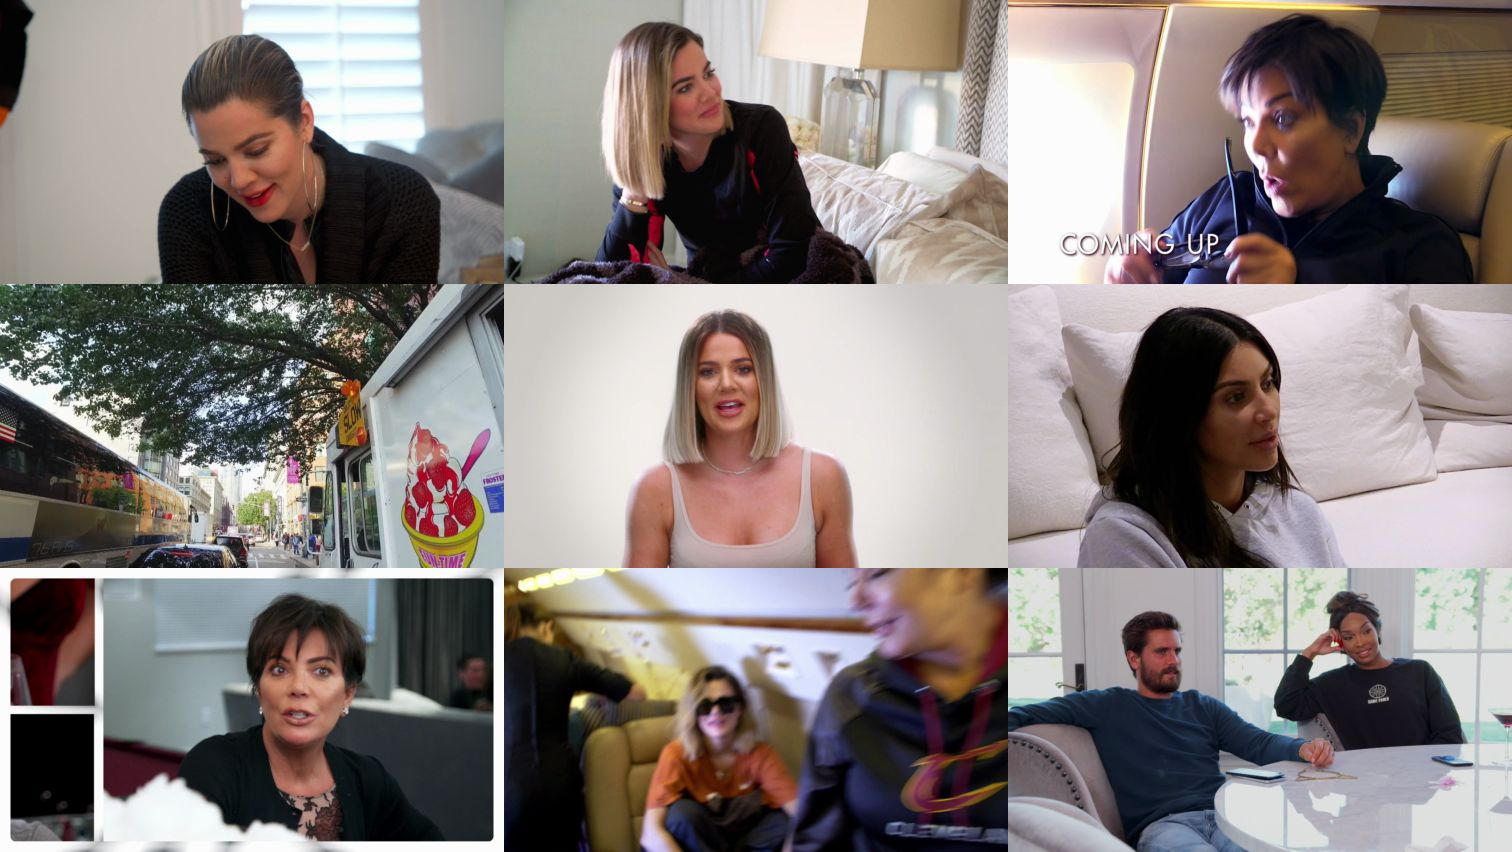 Khloe Kardashian Fansite 64268128449492866307 Keeping Up With The Kardashians – Episode 14.06 Fan Friction– Video streaming, Caps & Ratings